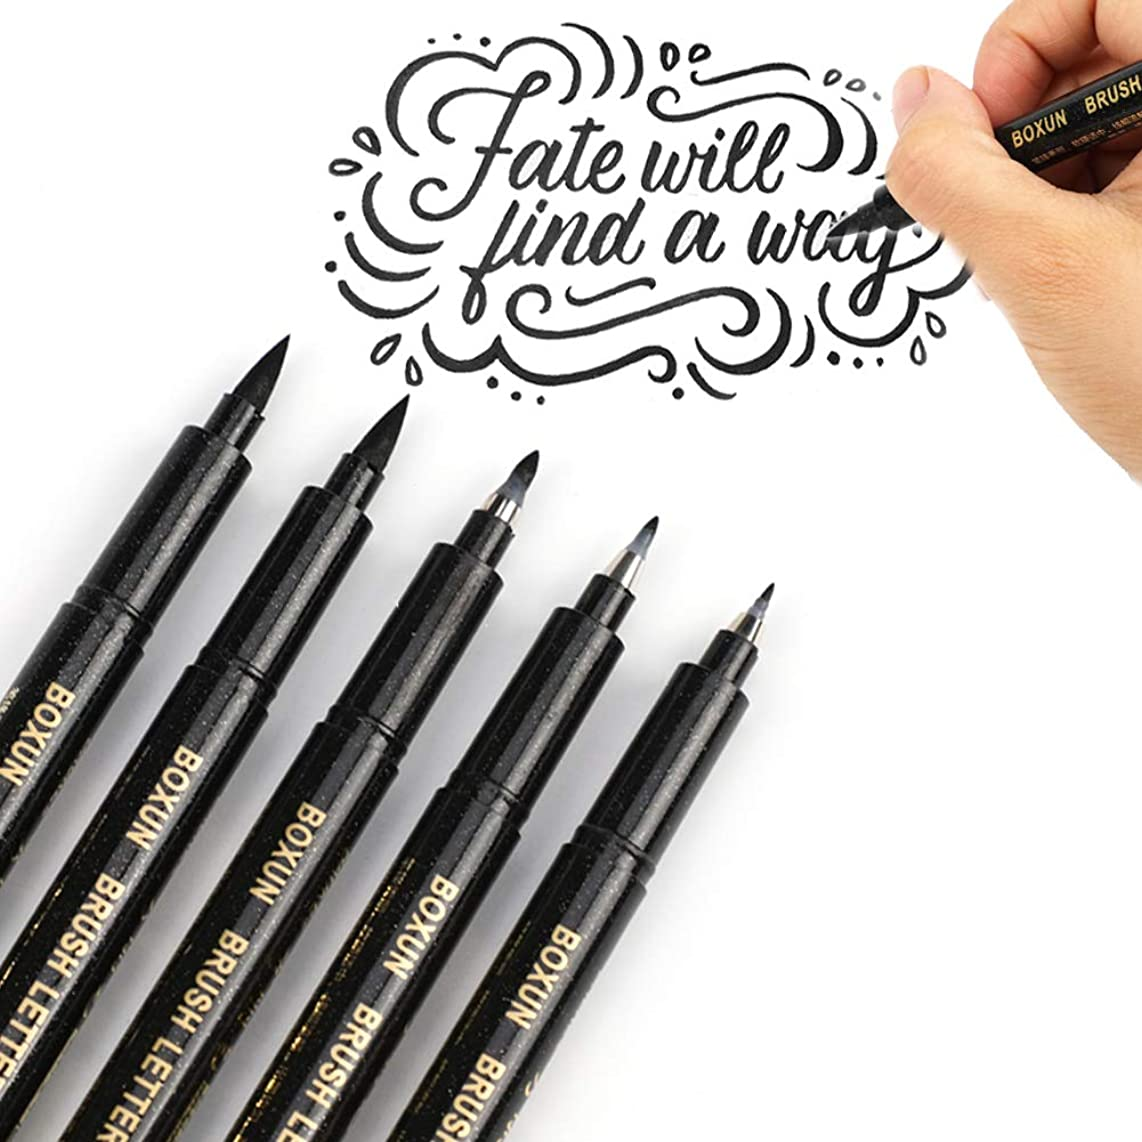 Calligraphy Brush Pen for Hand Lettering - 4 Size (5/Pack), Refillable Black Ink Marker Pen for Beginners Writing, Art Drawings, Illustrations, Bullet Journal